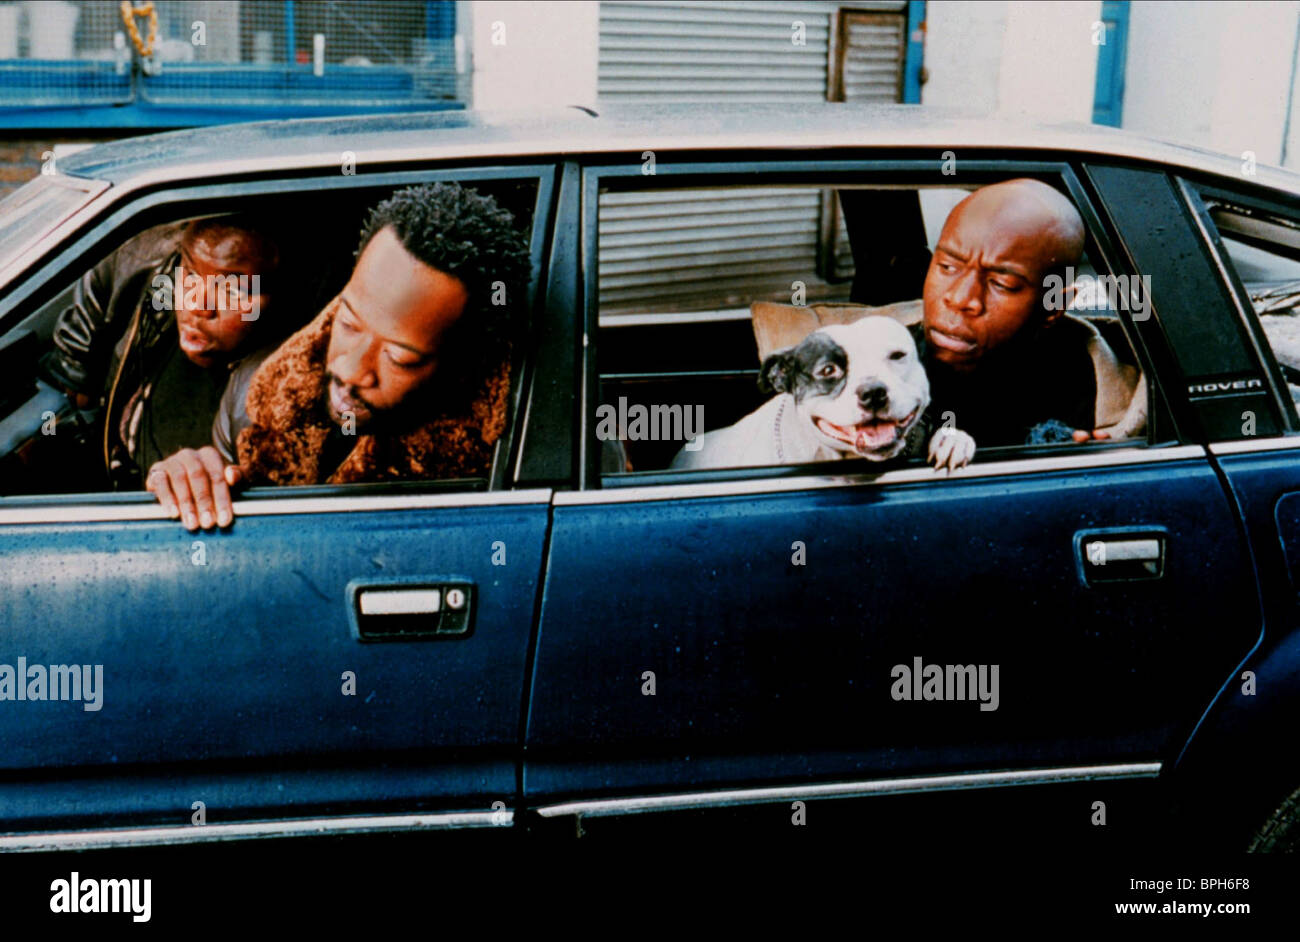 ADE LENNIE JAMES & ROBBIE GEE SNATCH (2000) - Stock Image